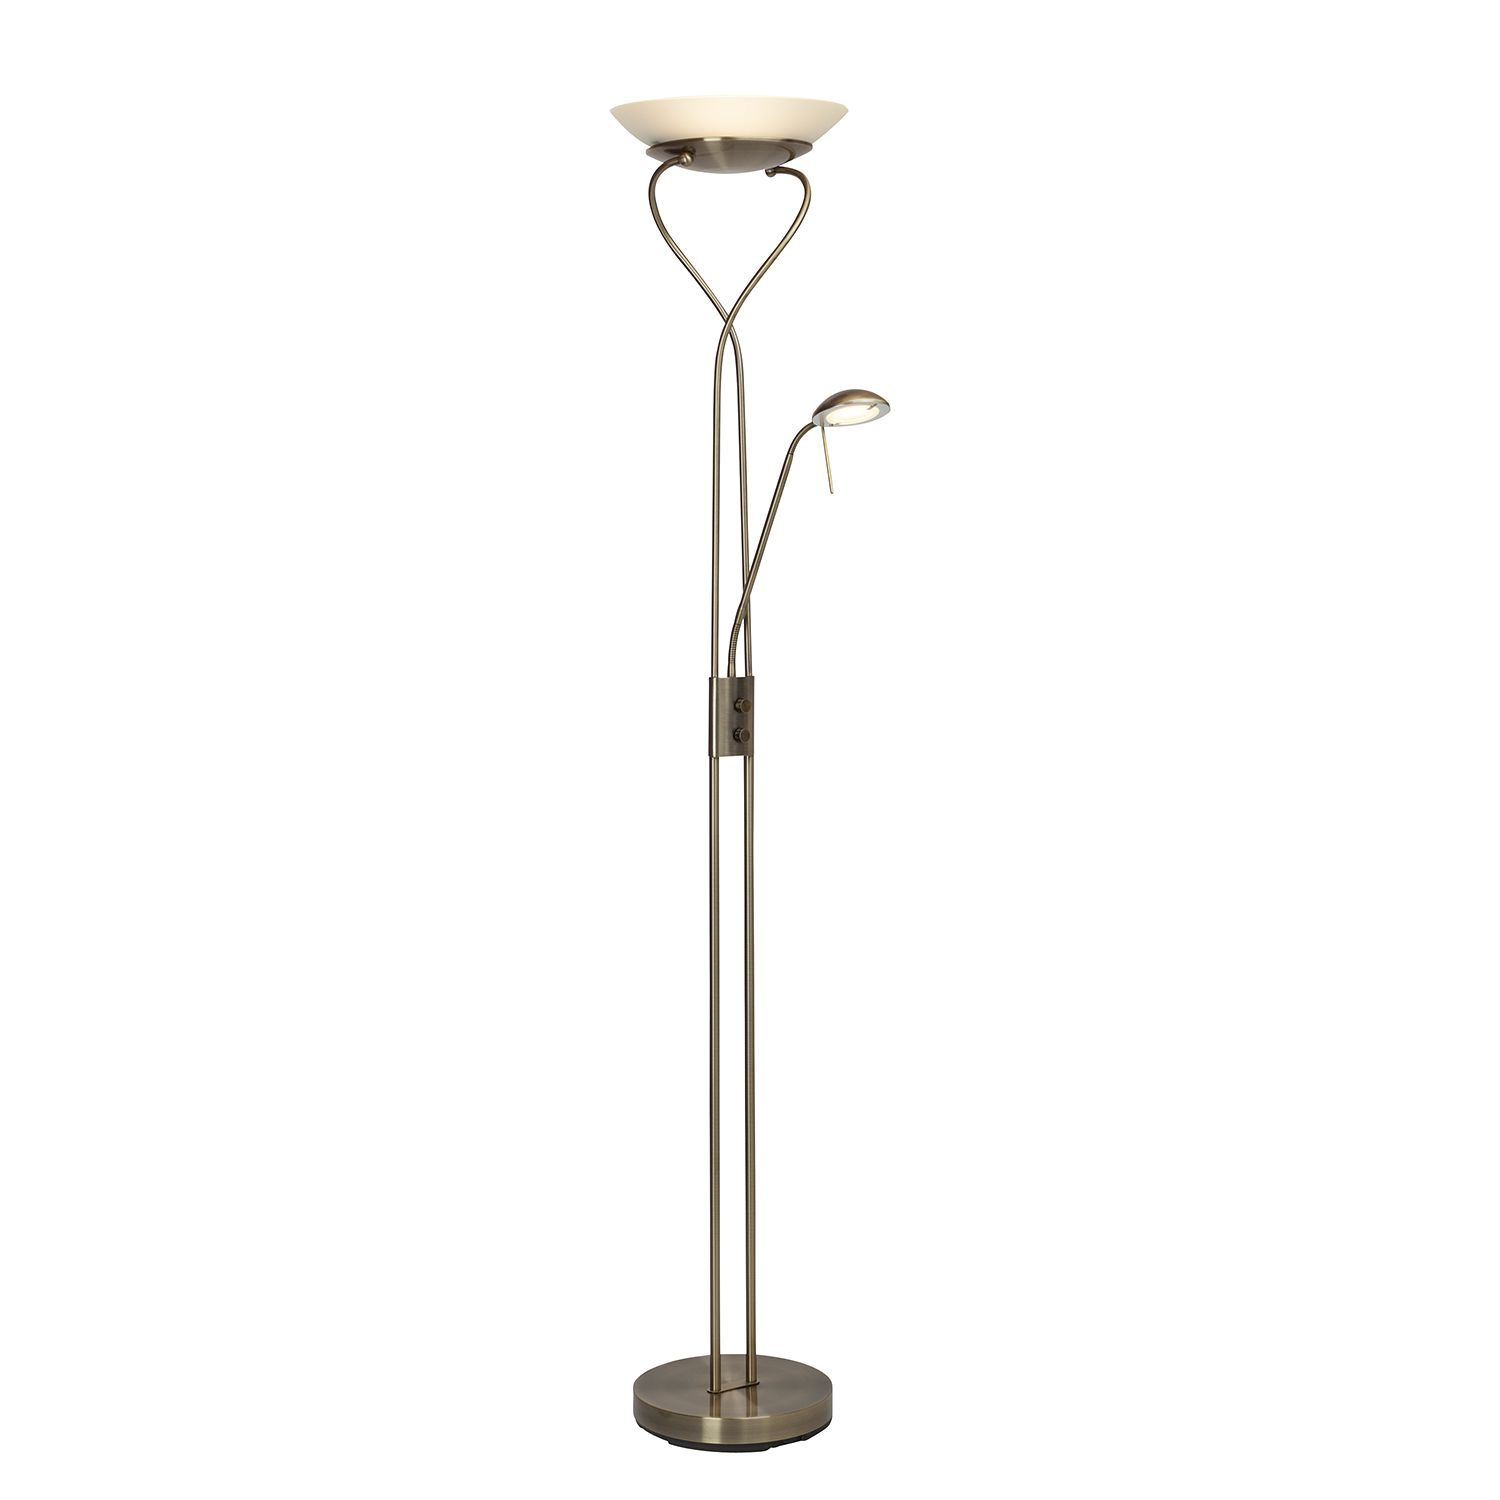 Home24 lampen staande lampen brilliant - Home24 lampen ...